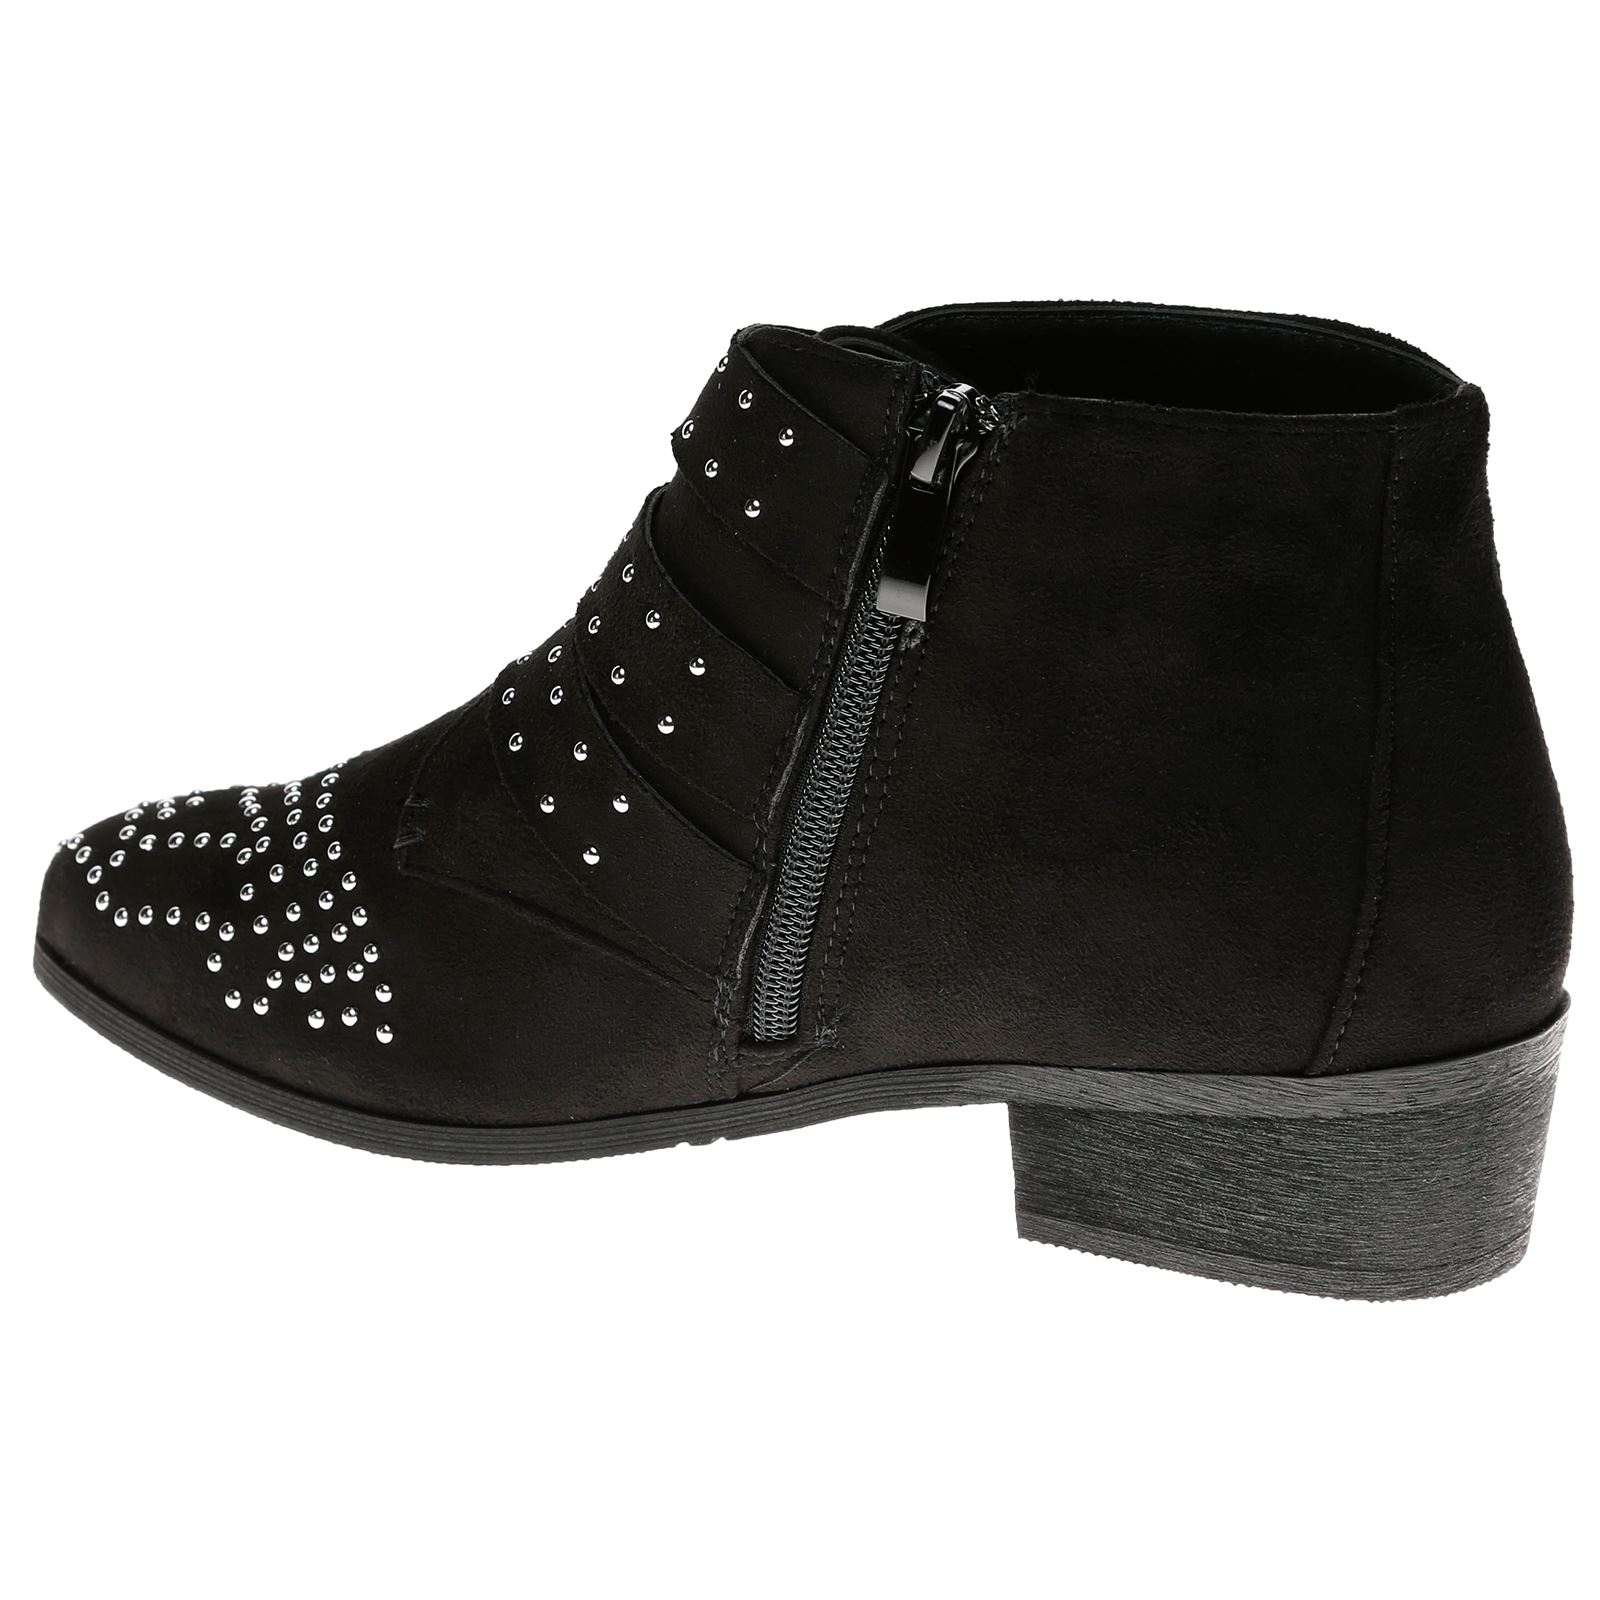 Liv-Womens-Flats-Low-Heels-Buckle-Strappy-Biker-Ankle-Boots-Ladies-Shoes-Studded thumbnail 13